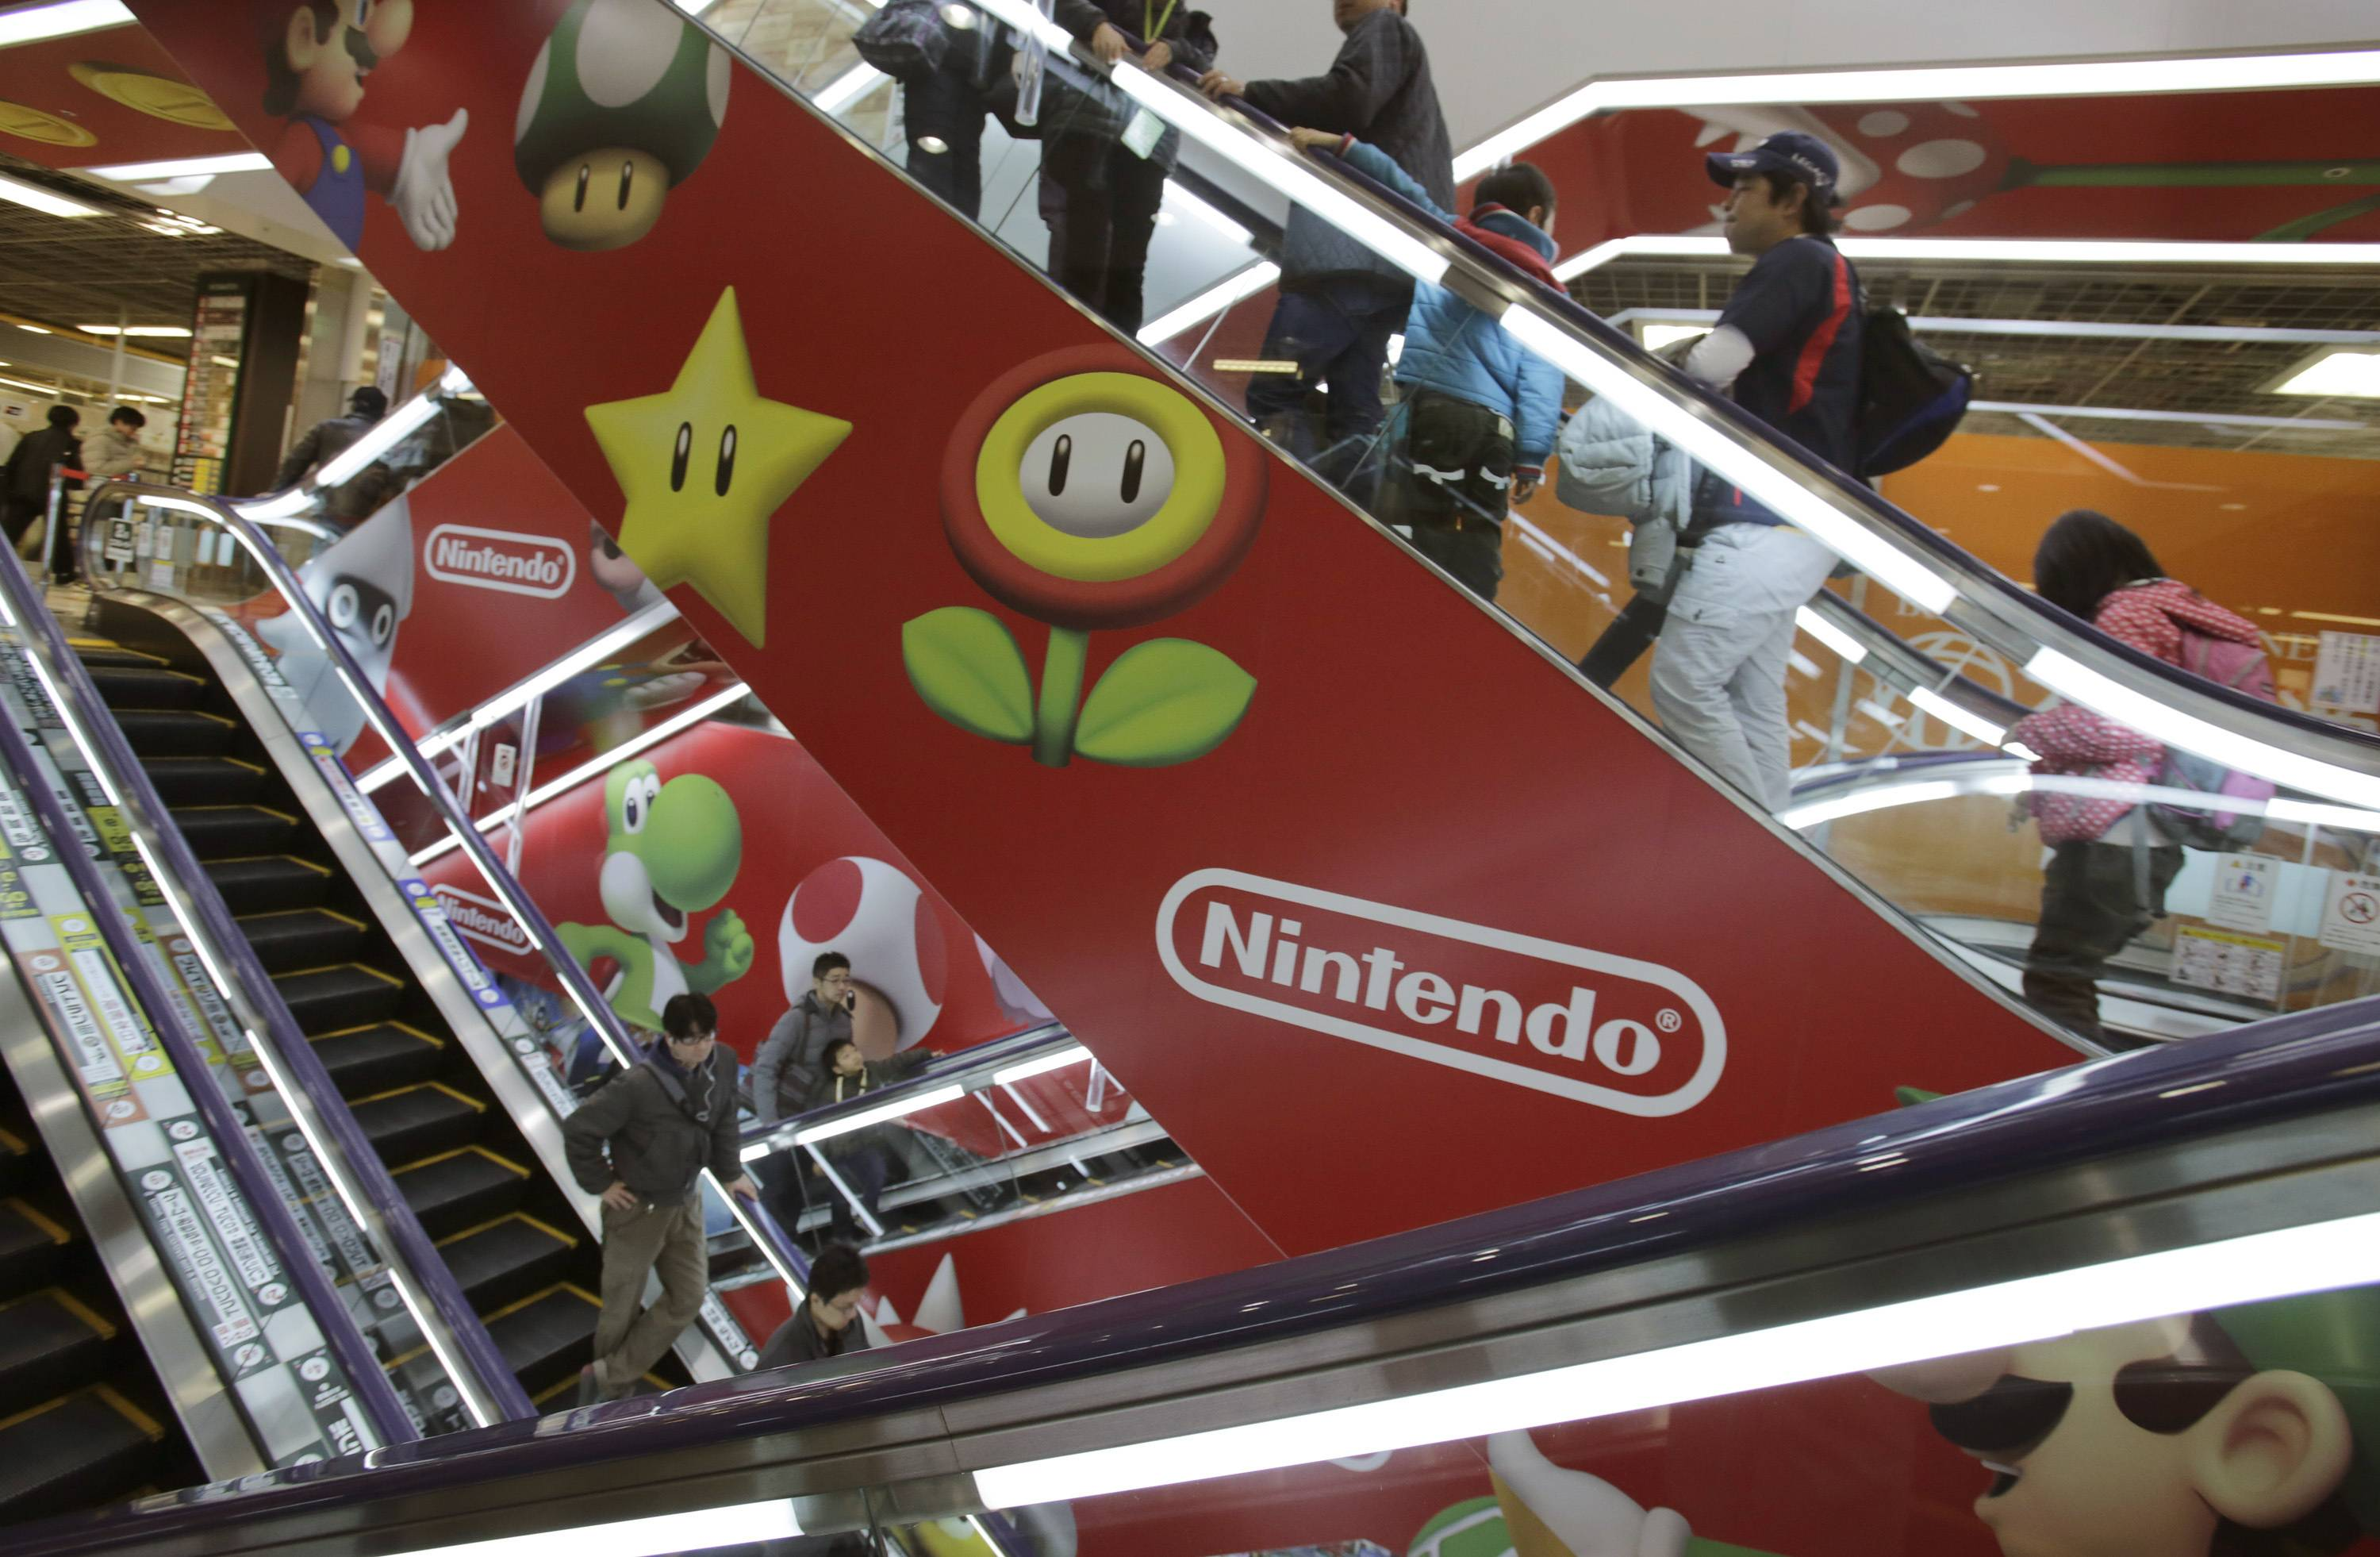 Bloomberg News Shoppers take escalators painted with the logos of Nintendo and Super Mario characters at an electronics store in Tokyo. Nintendo Co. sank to a worse-than-expected loss for the fiscal first quarter on lagging Wii U and 3DS video-game machine sales.